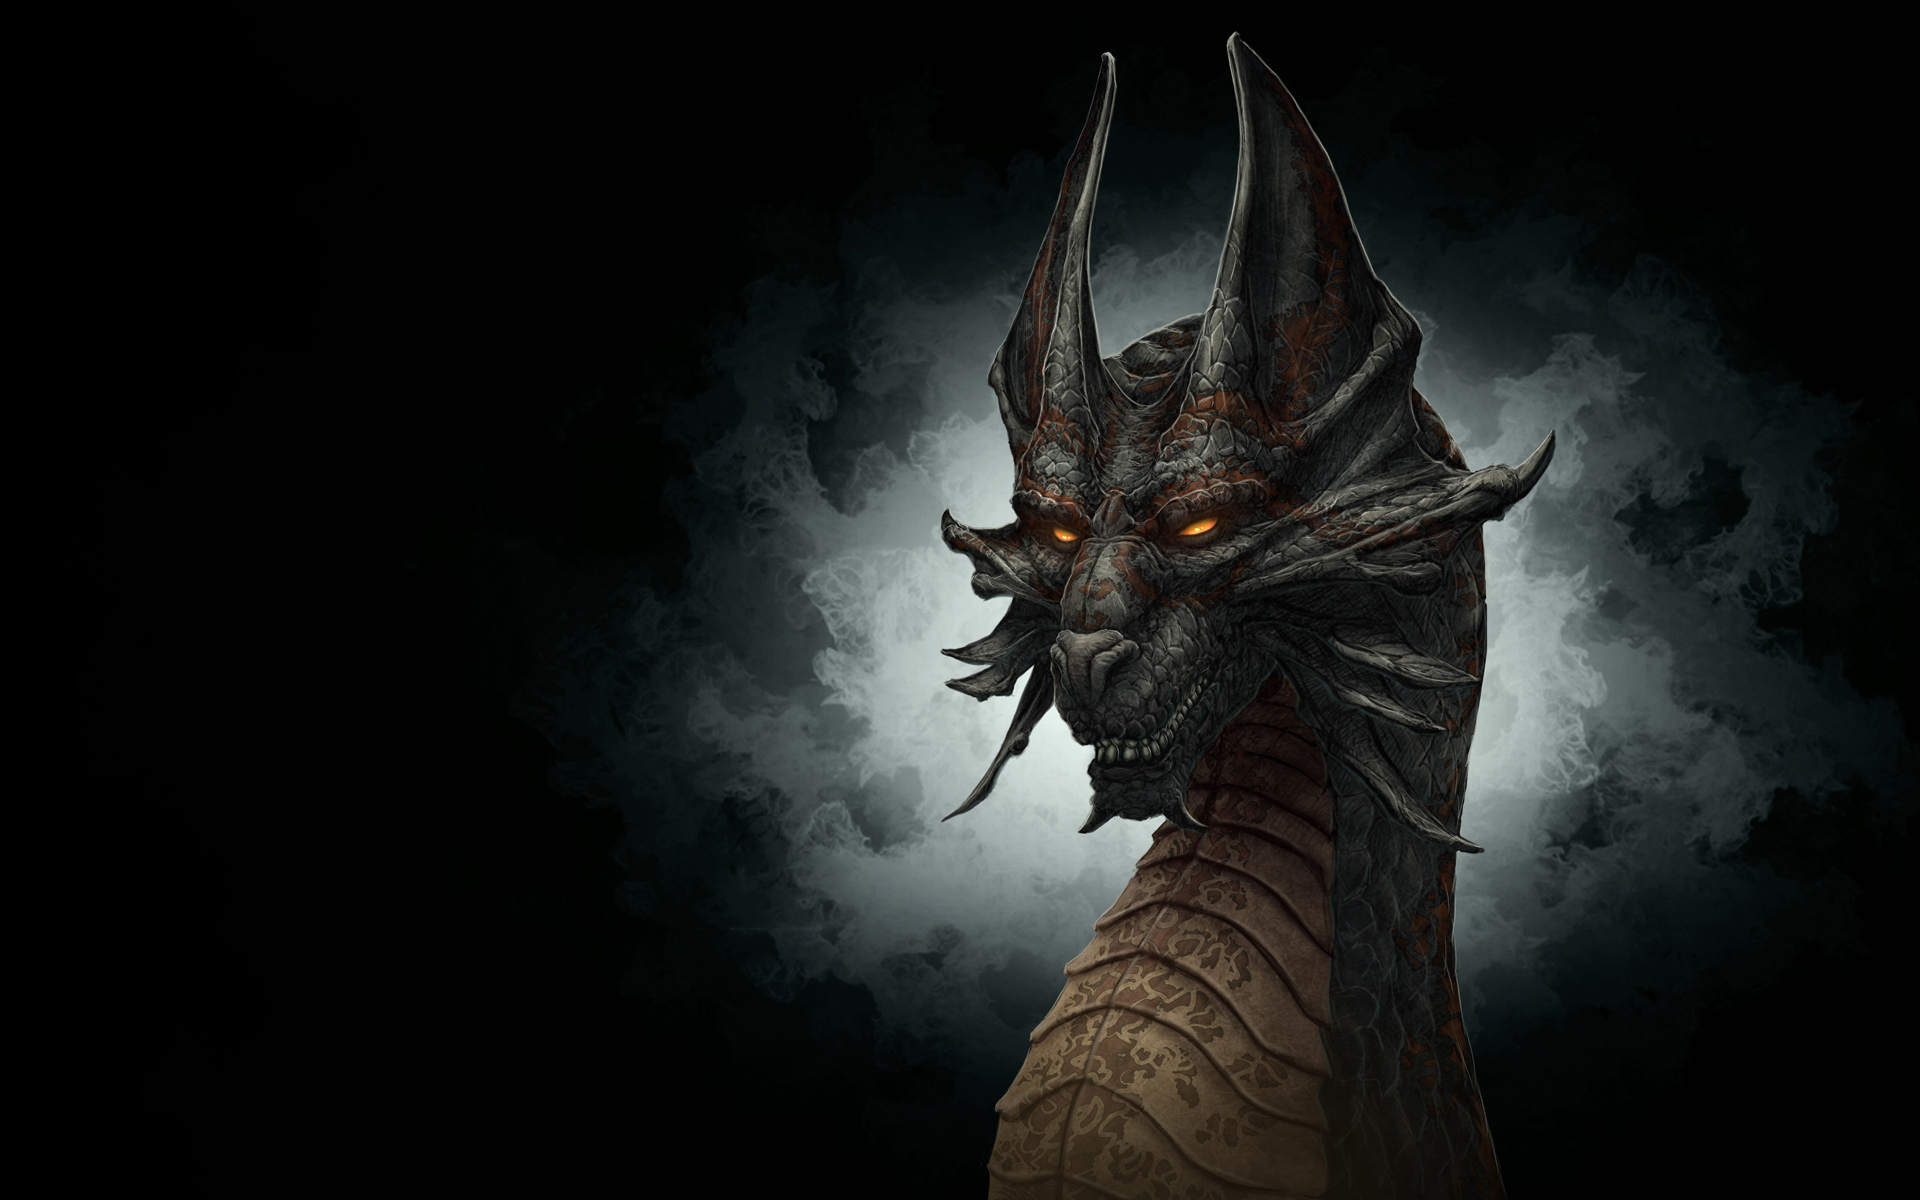 48+ Black Dragon Wallpaper HD on WallpaperSafari